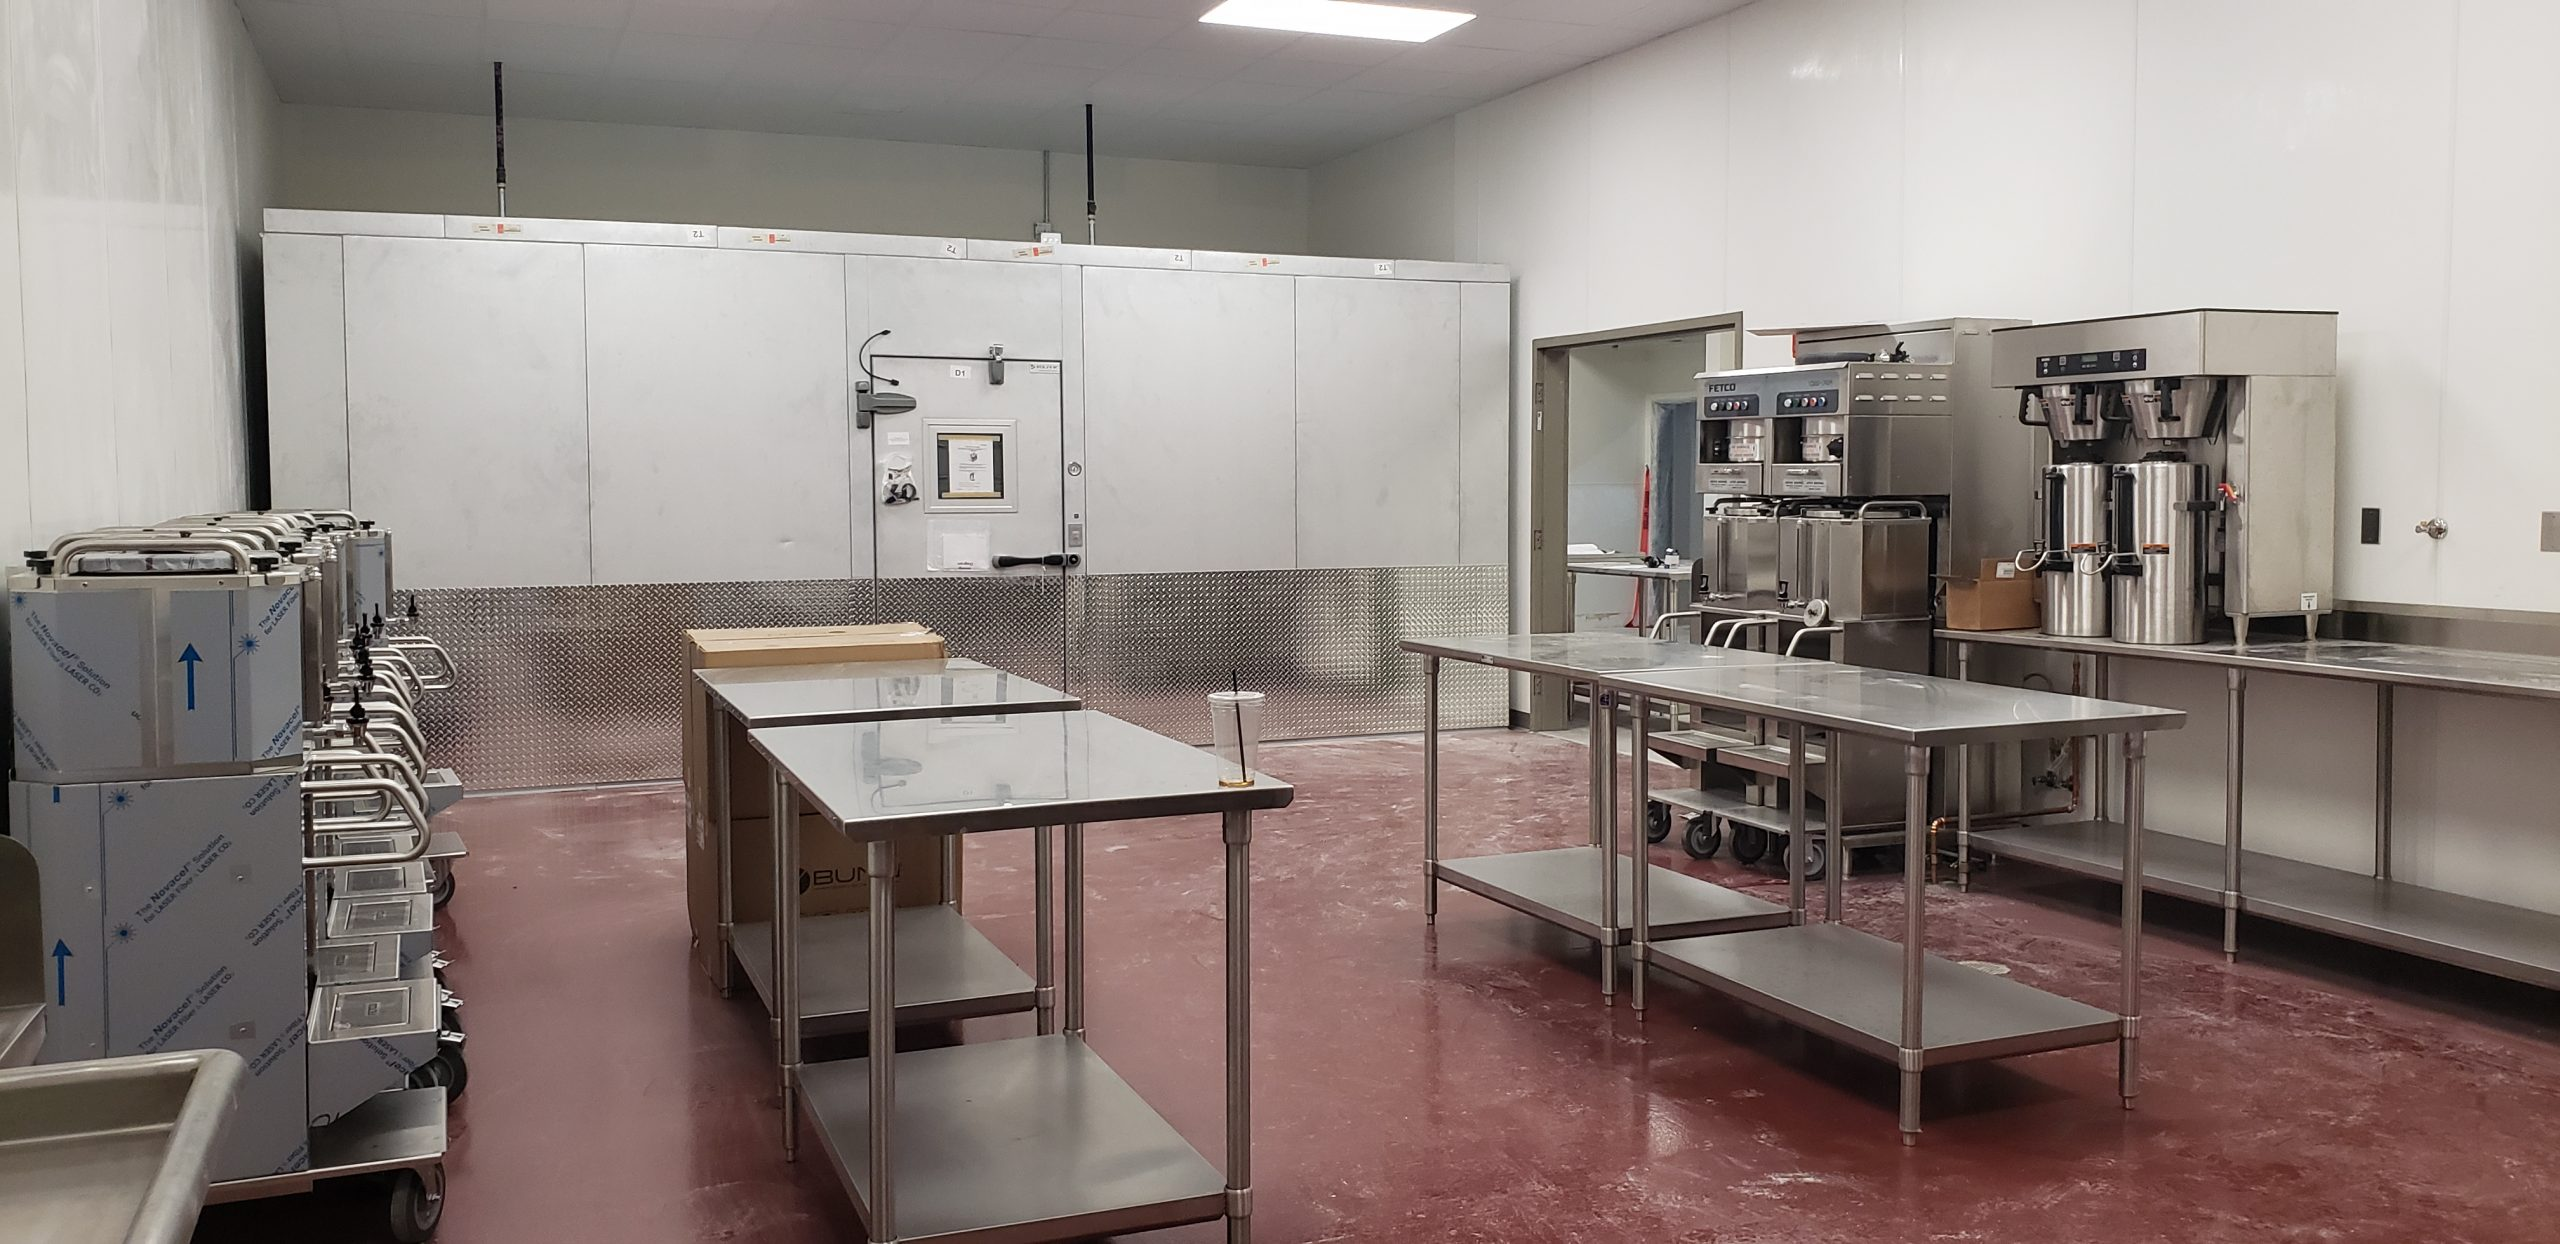 Kitchen Facility at iHotel and Conference Center